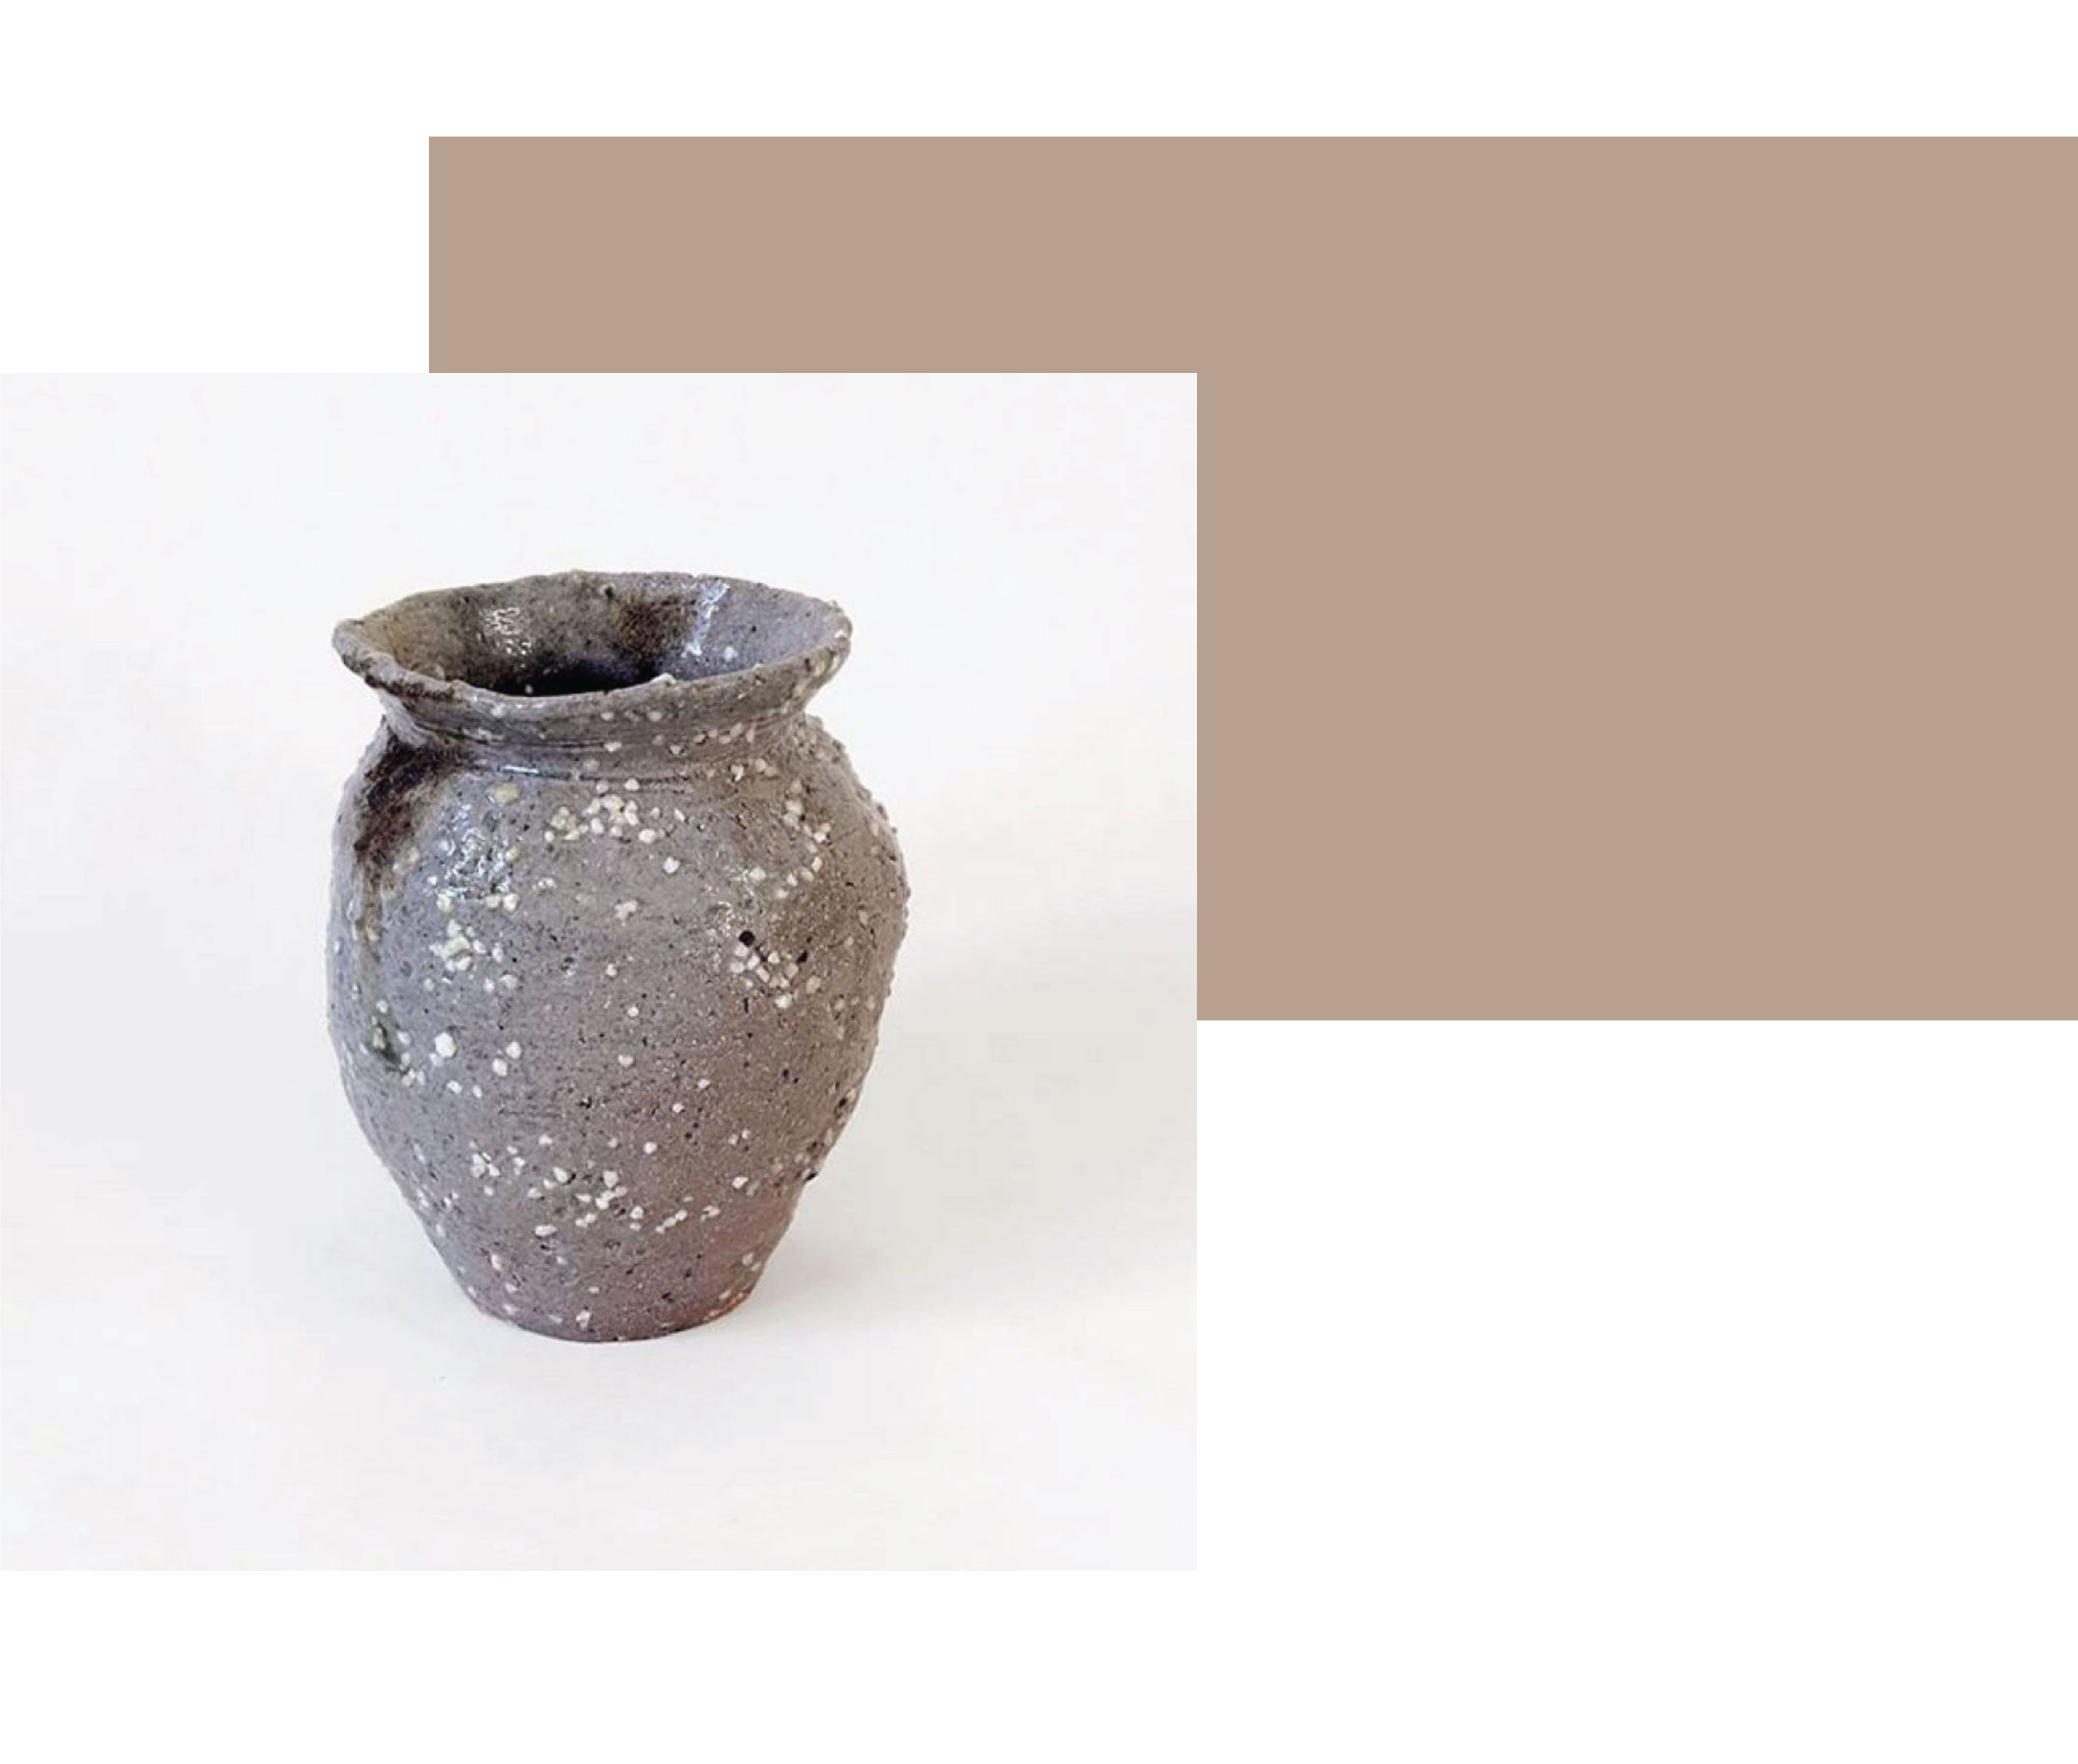 A single pale purple salt fired vase with black ash and white speckles, on a white background, by New Zealand ceramist and ceramic artist Dave Marshall.